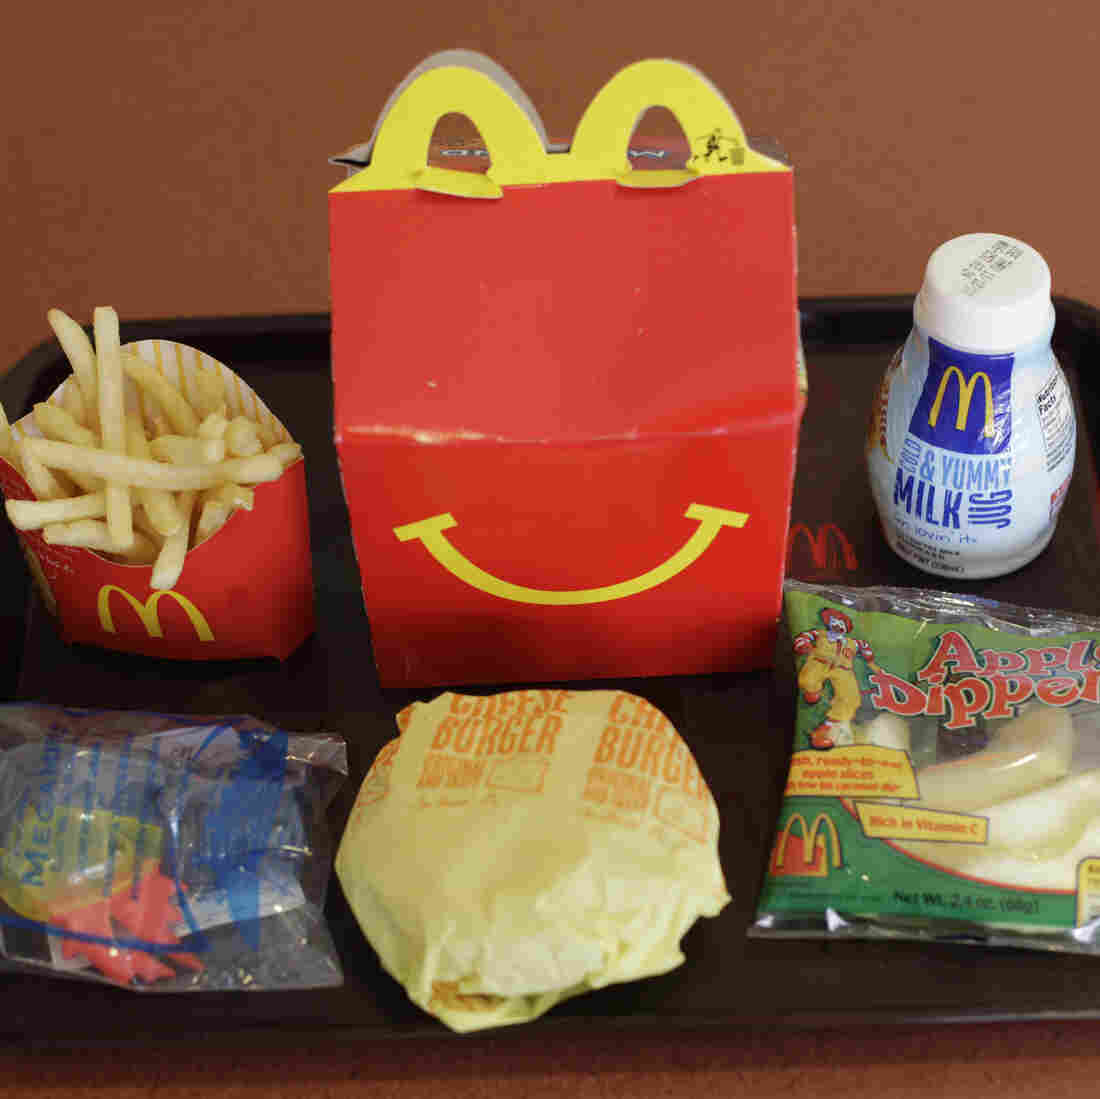 Heroin In The Drive-Thru? McDonald's Employee Busted